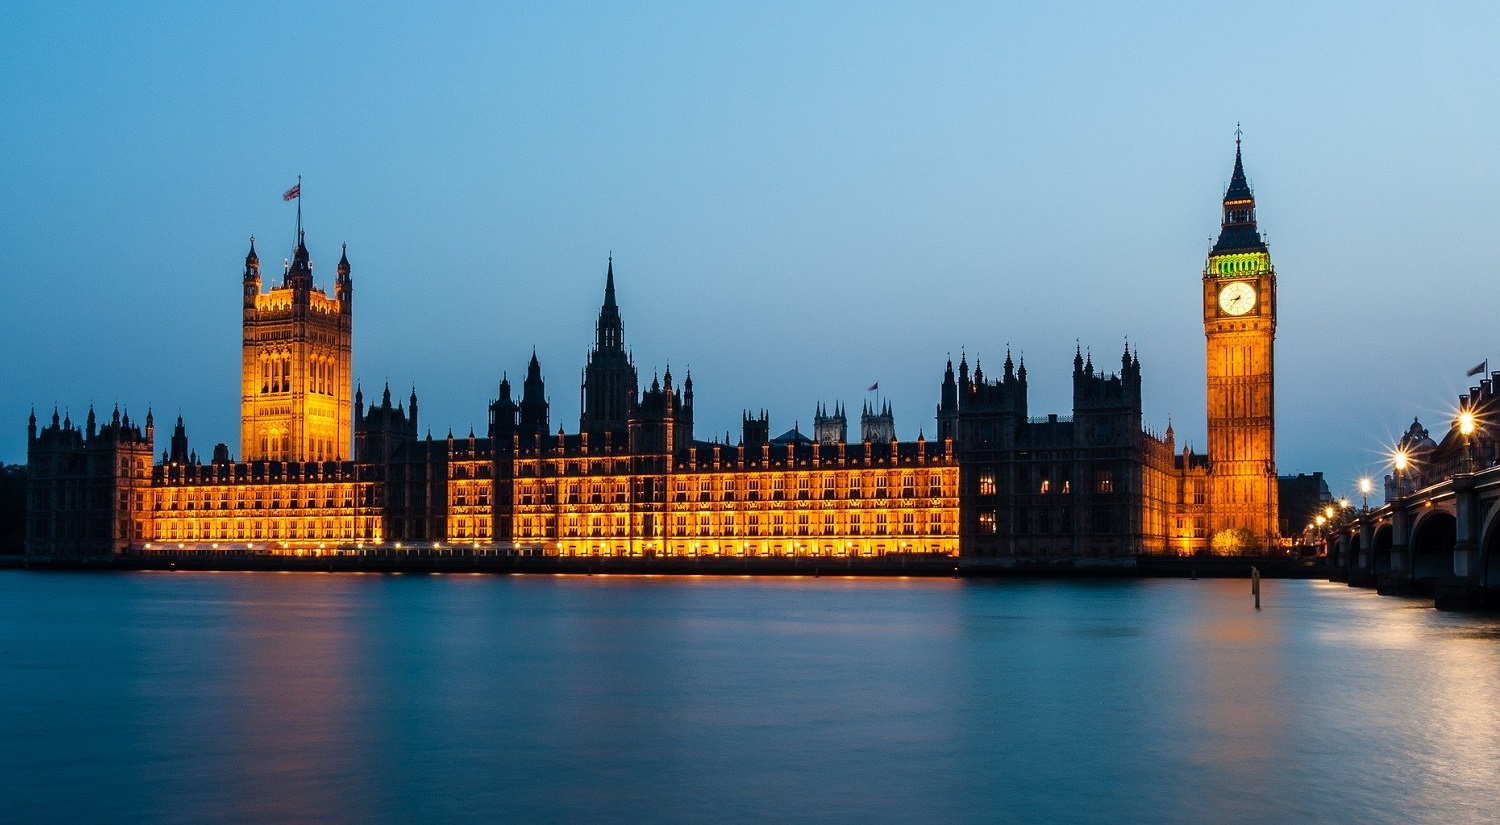 A night time scene of the Houses of Parliament in London.